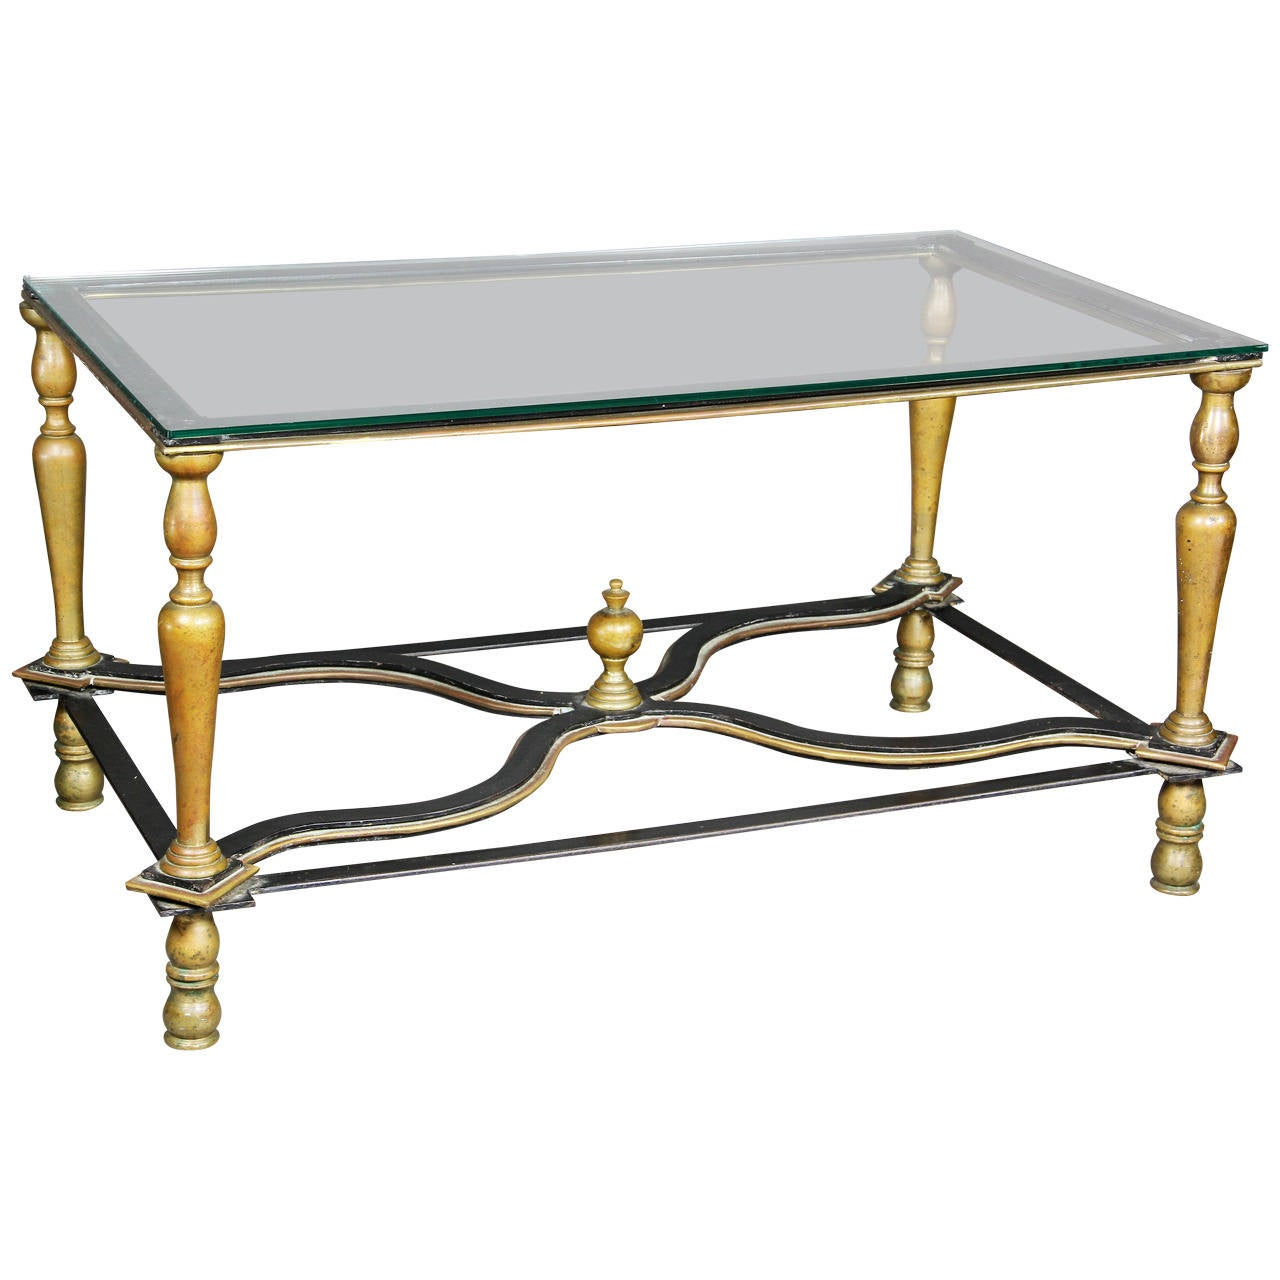 Bronze and wrought iron coffee table for sale at 1stdibs Wrought iron coffee tables